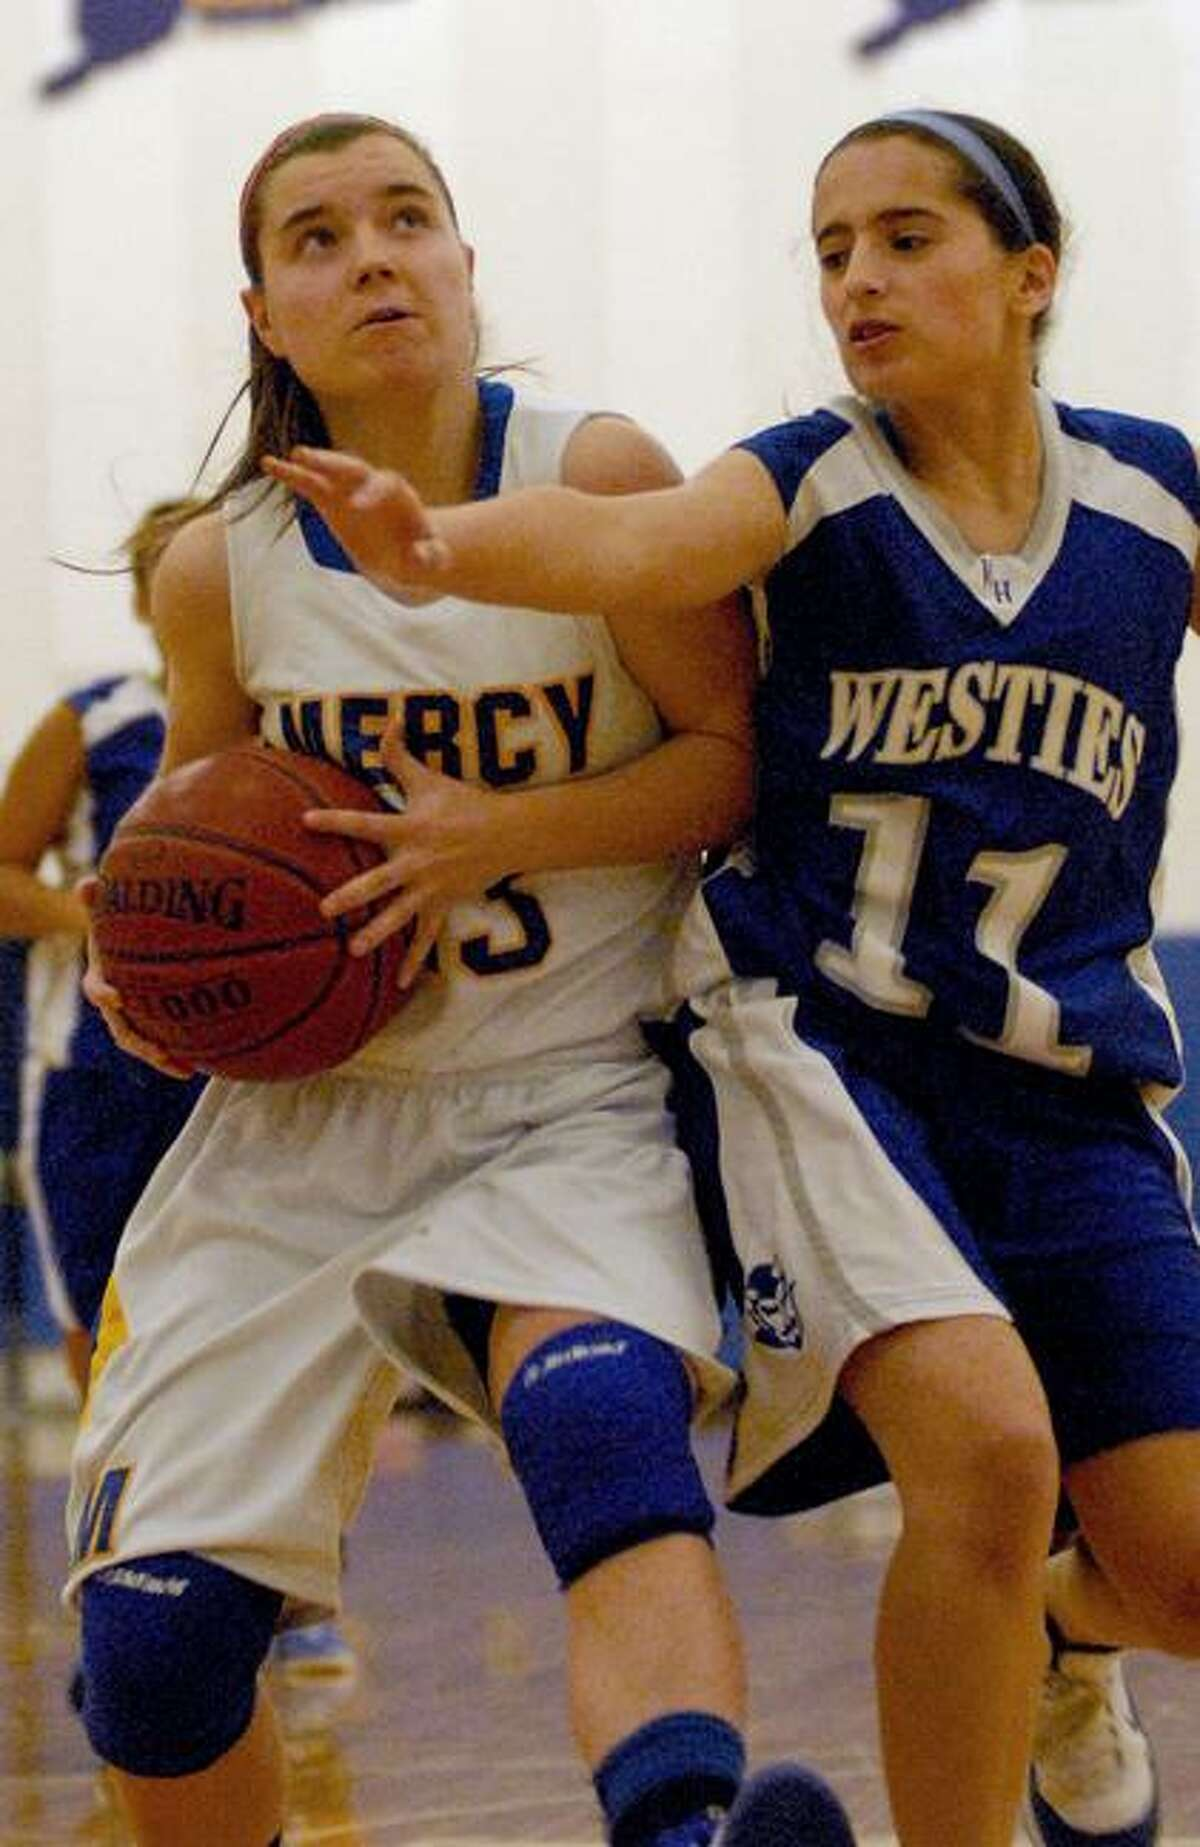 Catherine Avalone/The Middletown PressMercy senior captain Maria Weselyj drives to the hoop as West Haven's Amanda Martino defends. Weselyj surpassed 1,000 career points Friday night as the Tigers defeated the Westies 73-32 in Middletown.